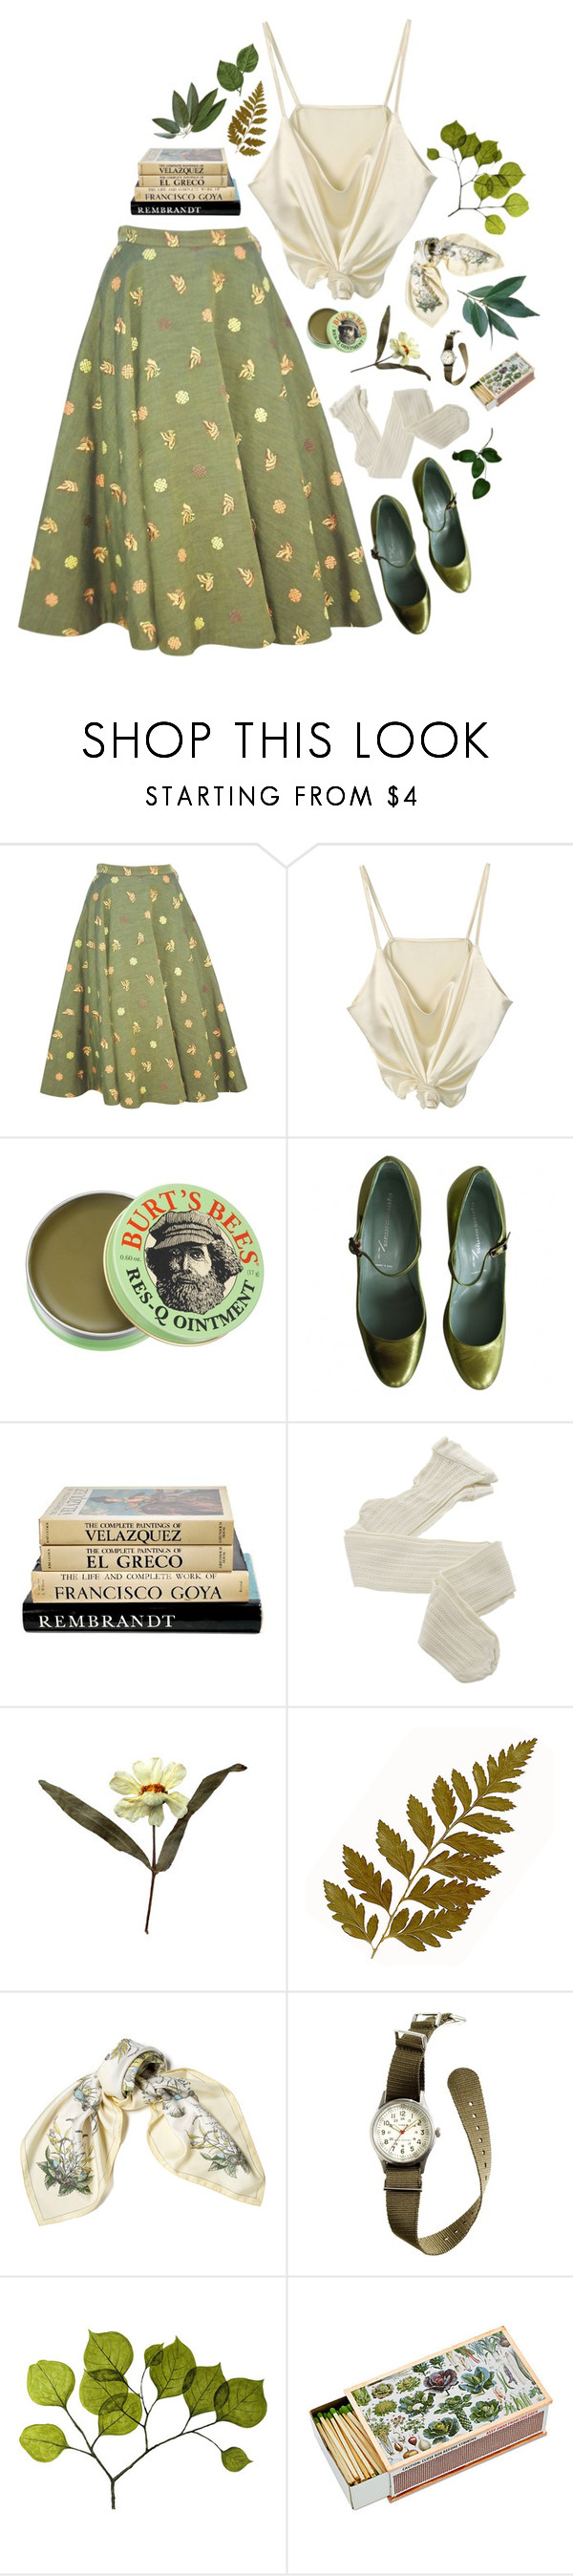 """""""BONNIE LASS"""" by thinvein ❤ liked on Polyvore featuring Burt's Bees, Sigerson Morrison, Fogal, Grace, Hermès, J.Crew, Dot & Bo, vintage, classic and casualoutfit"""